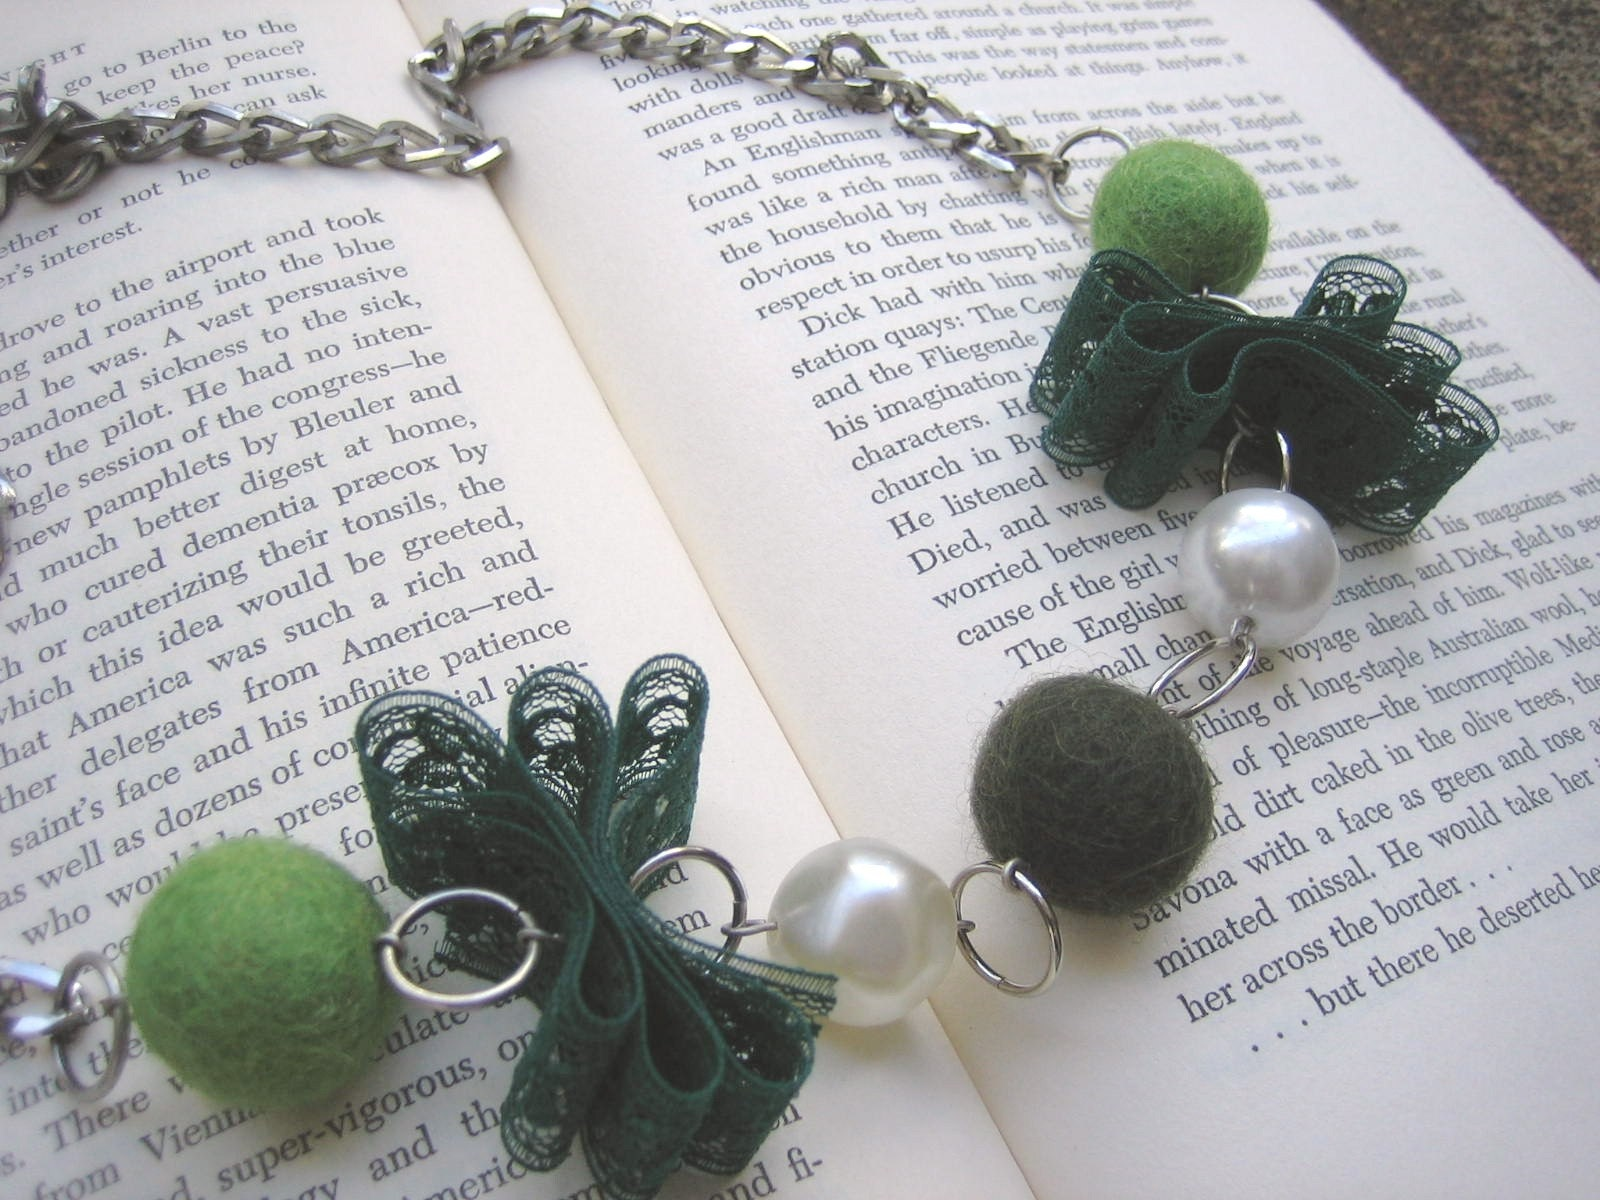 Unique Bead and Lace Necklace (Moss Green) - Recycled Vintage Chain, Beads and Lace, Handmade Felted Wool Beads in Shades of Green